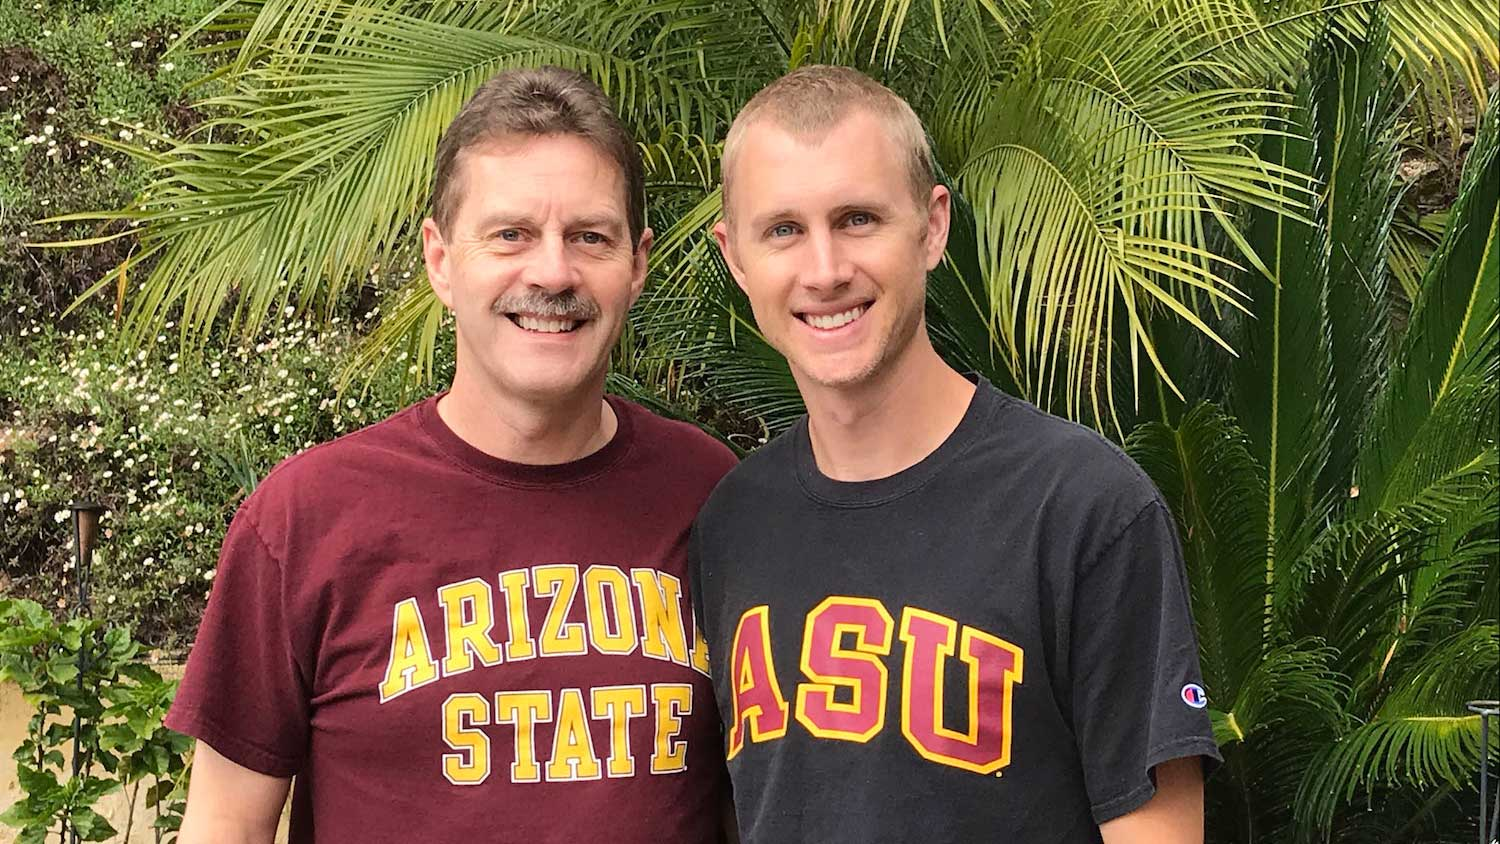 Doug Kolste, father of Brent Kolste, stand together in ASU t-shirts against palm leaves. They both graduate in May from the Fulton Schools..